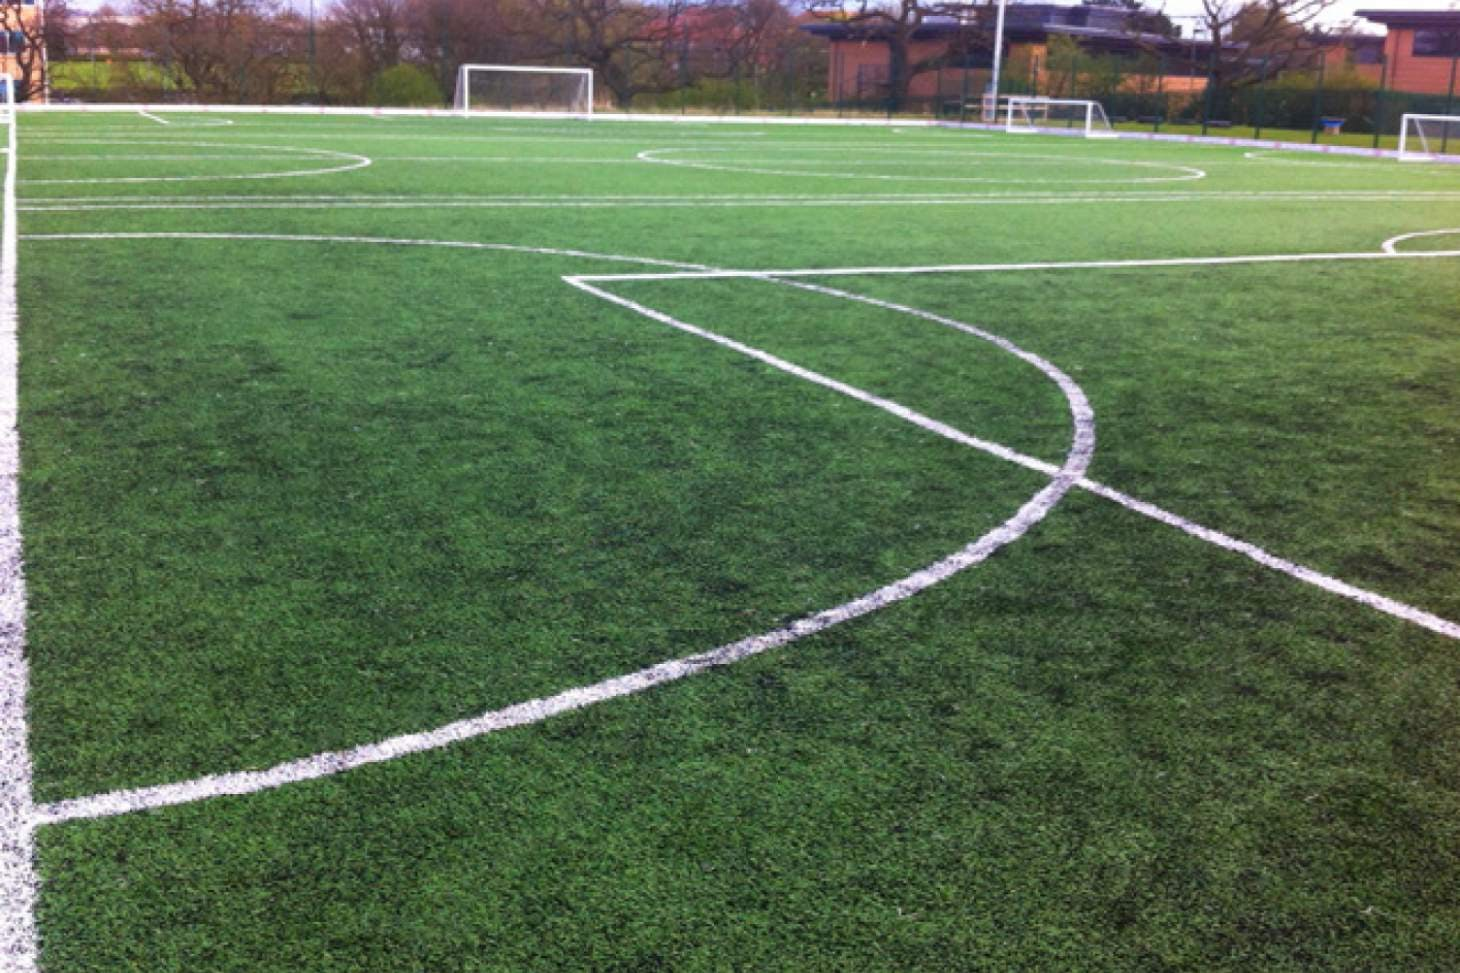 South Manchester Sports Club 11 a side | 3G Astroturf football pitch